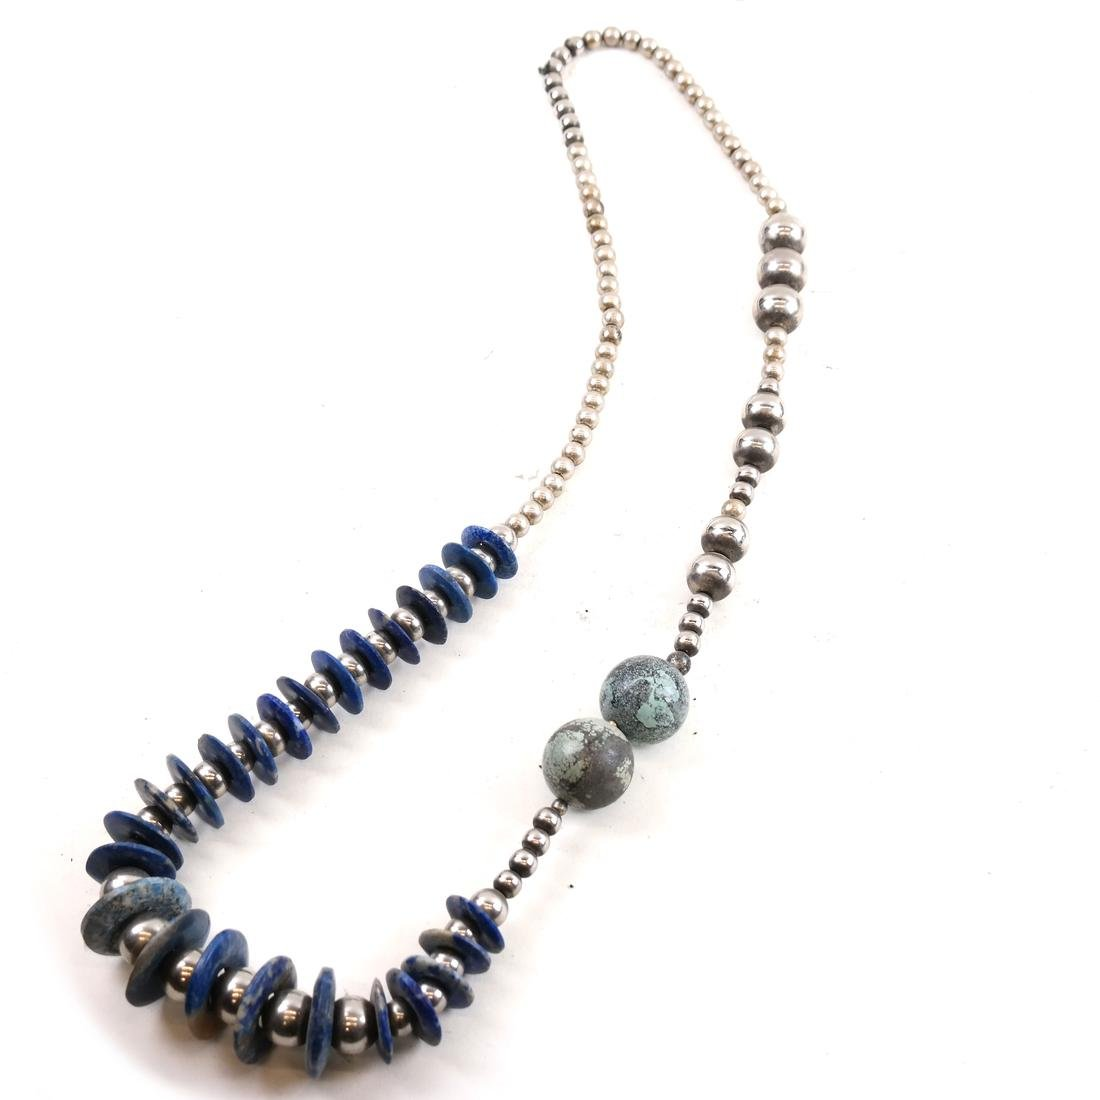 Asymmetrical Hardstone Necklace